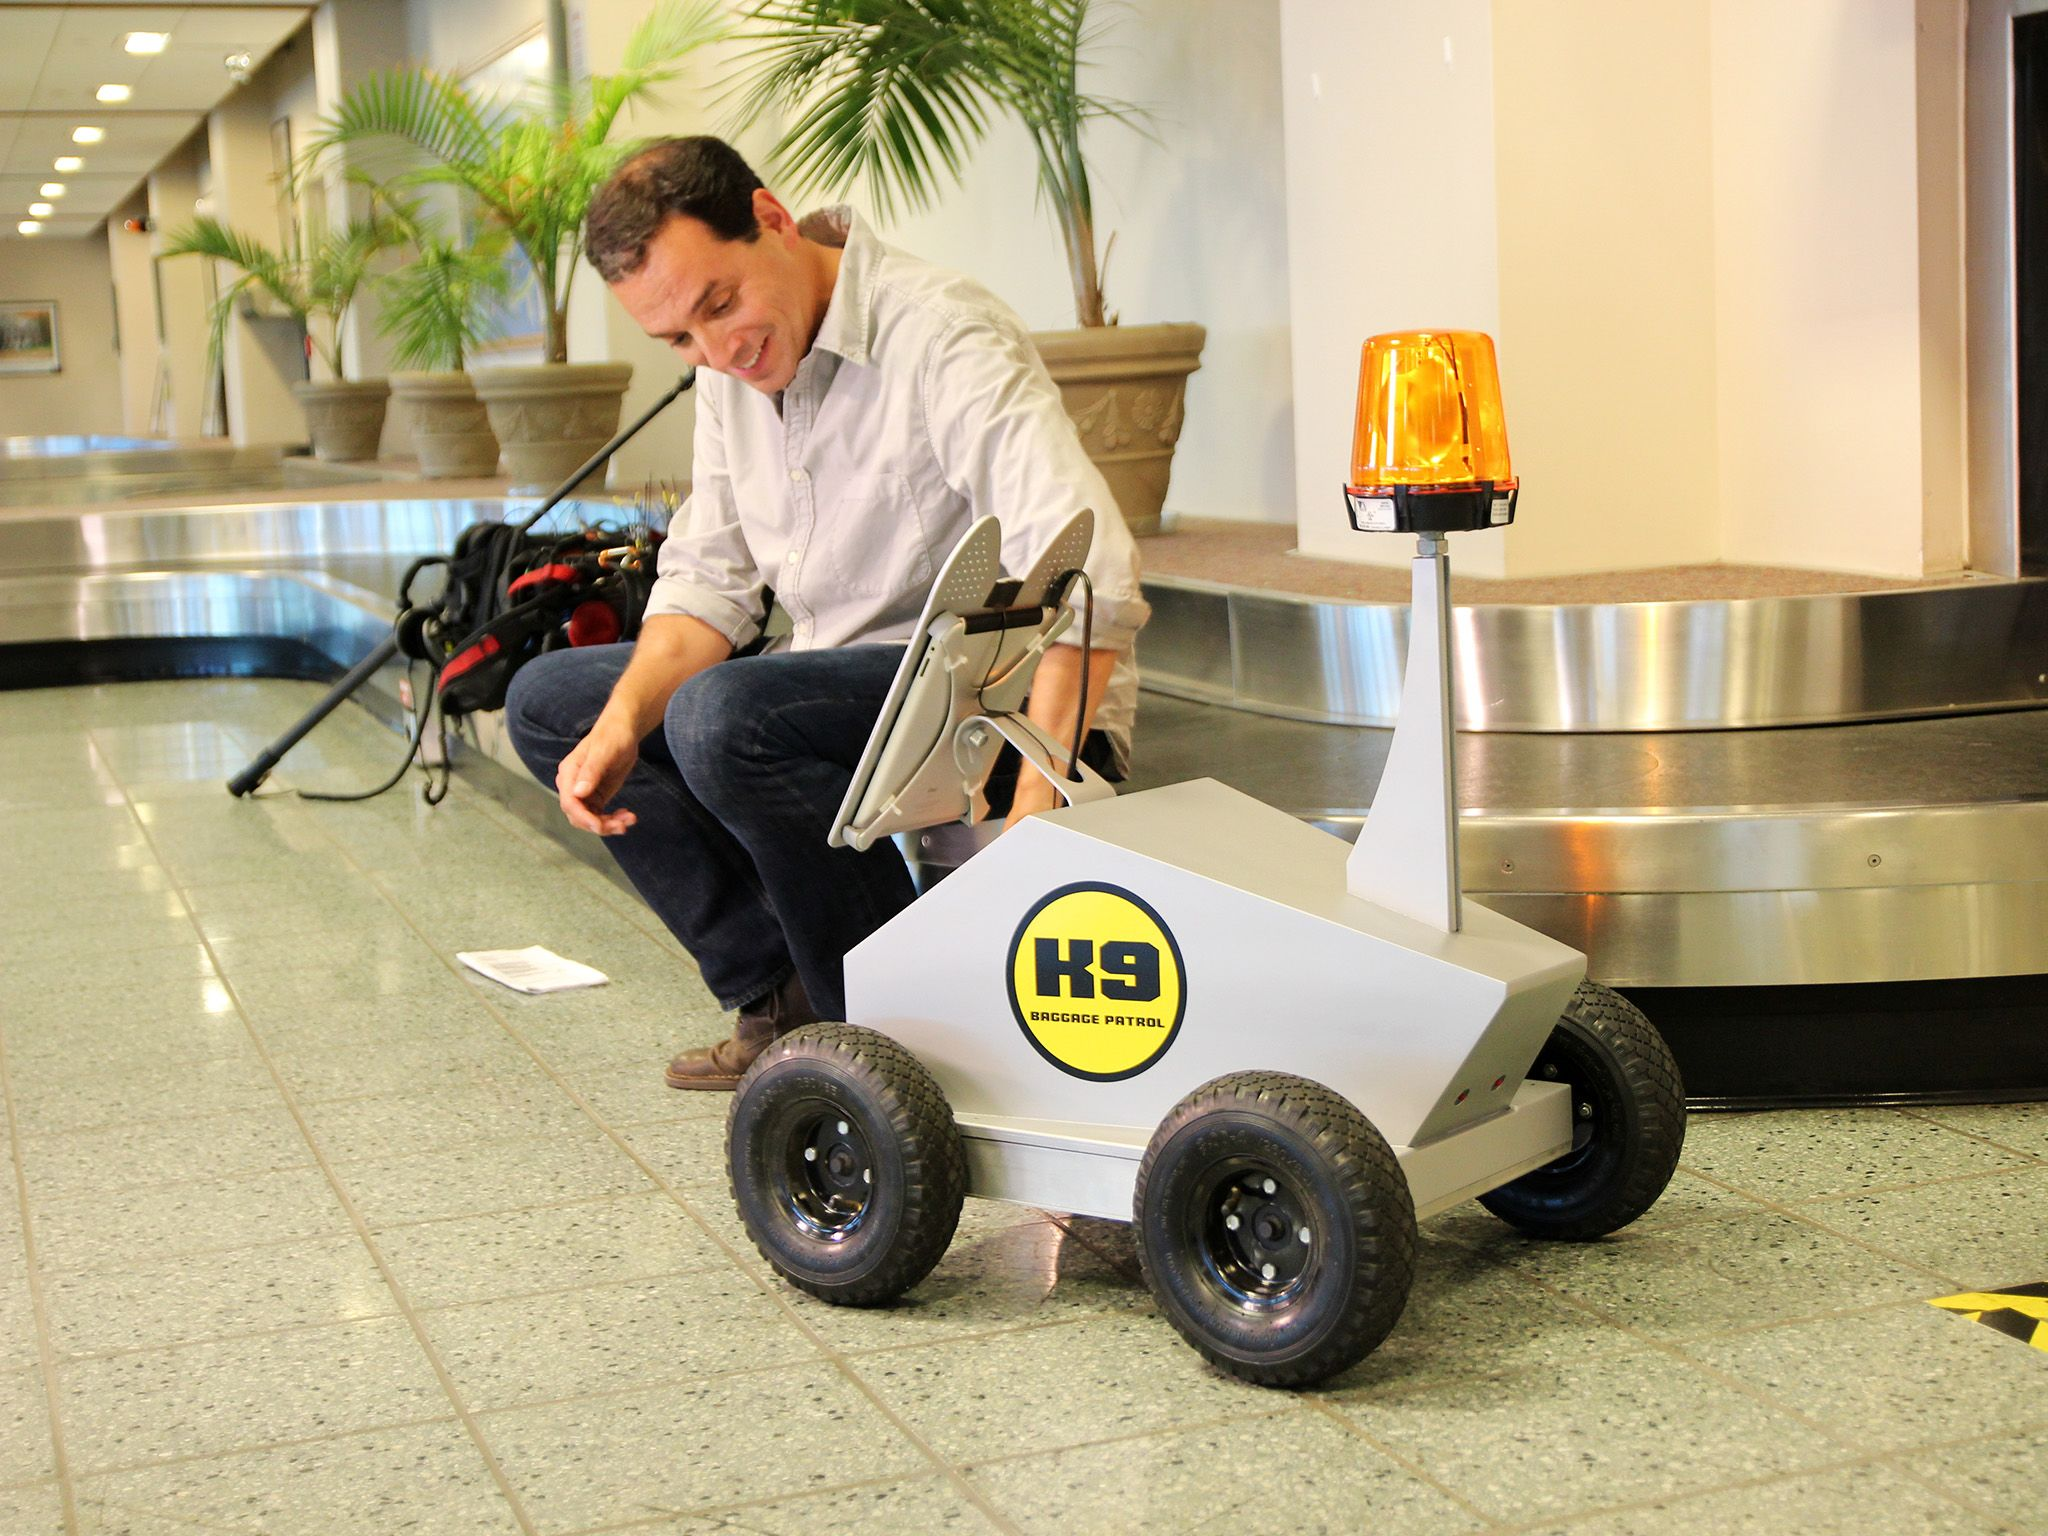 Ronkonkarma, NY:  Presenter Daniel Pink meets Robo-Dog. This image is from Crowd Control. [Dagens foto - november 2014]